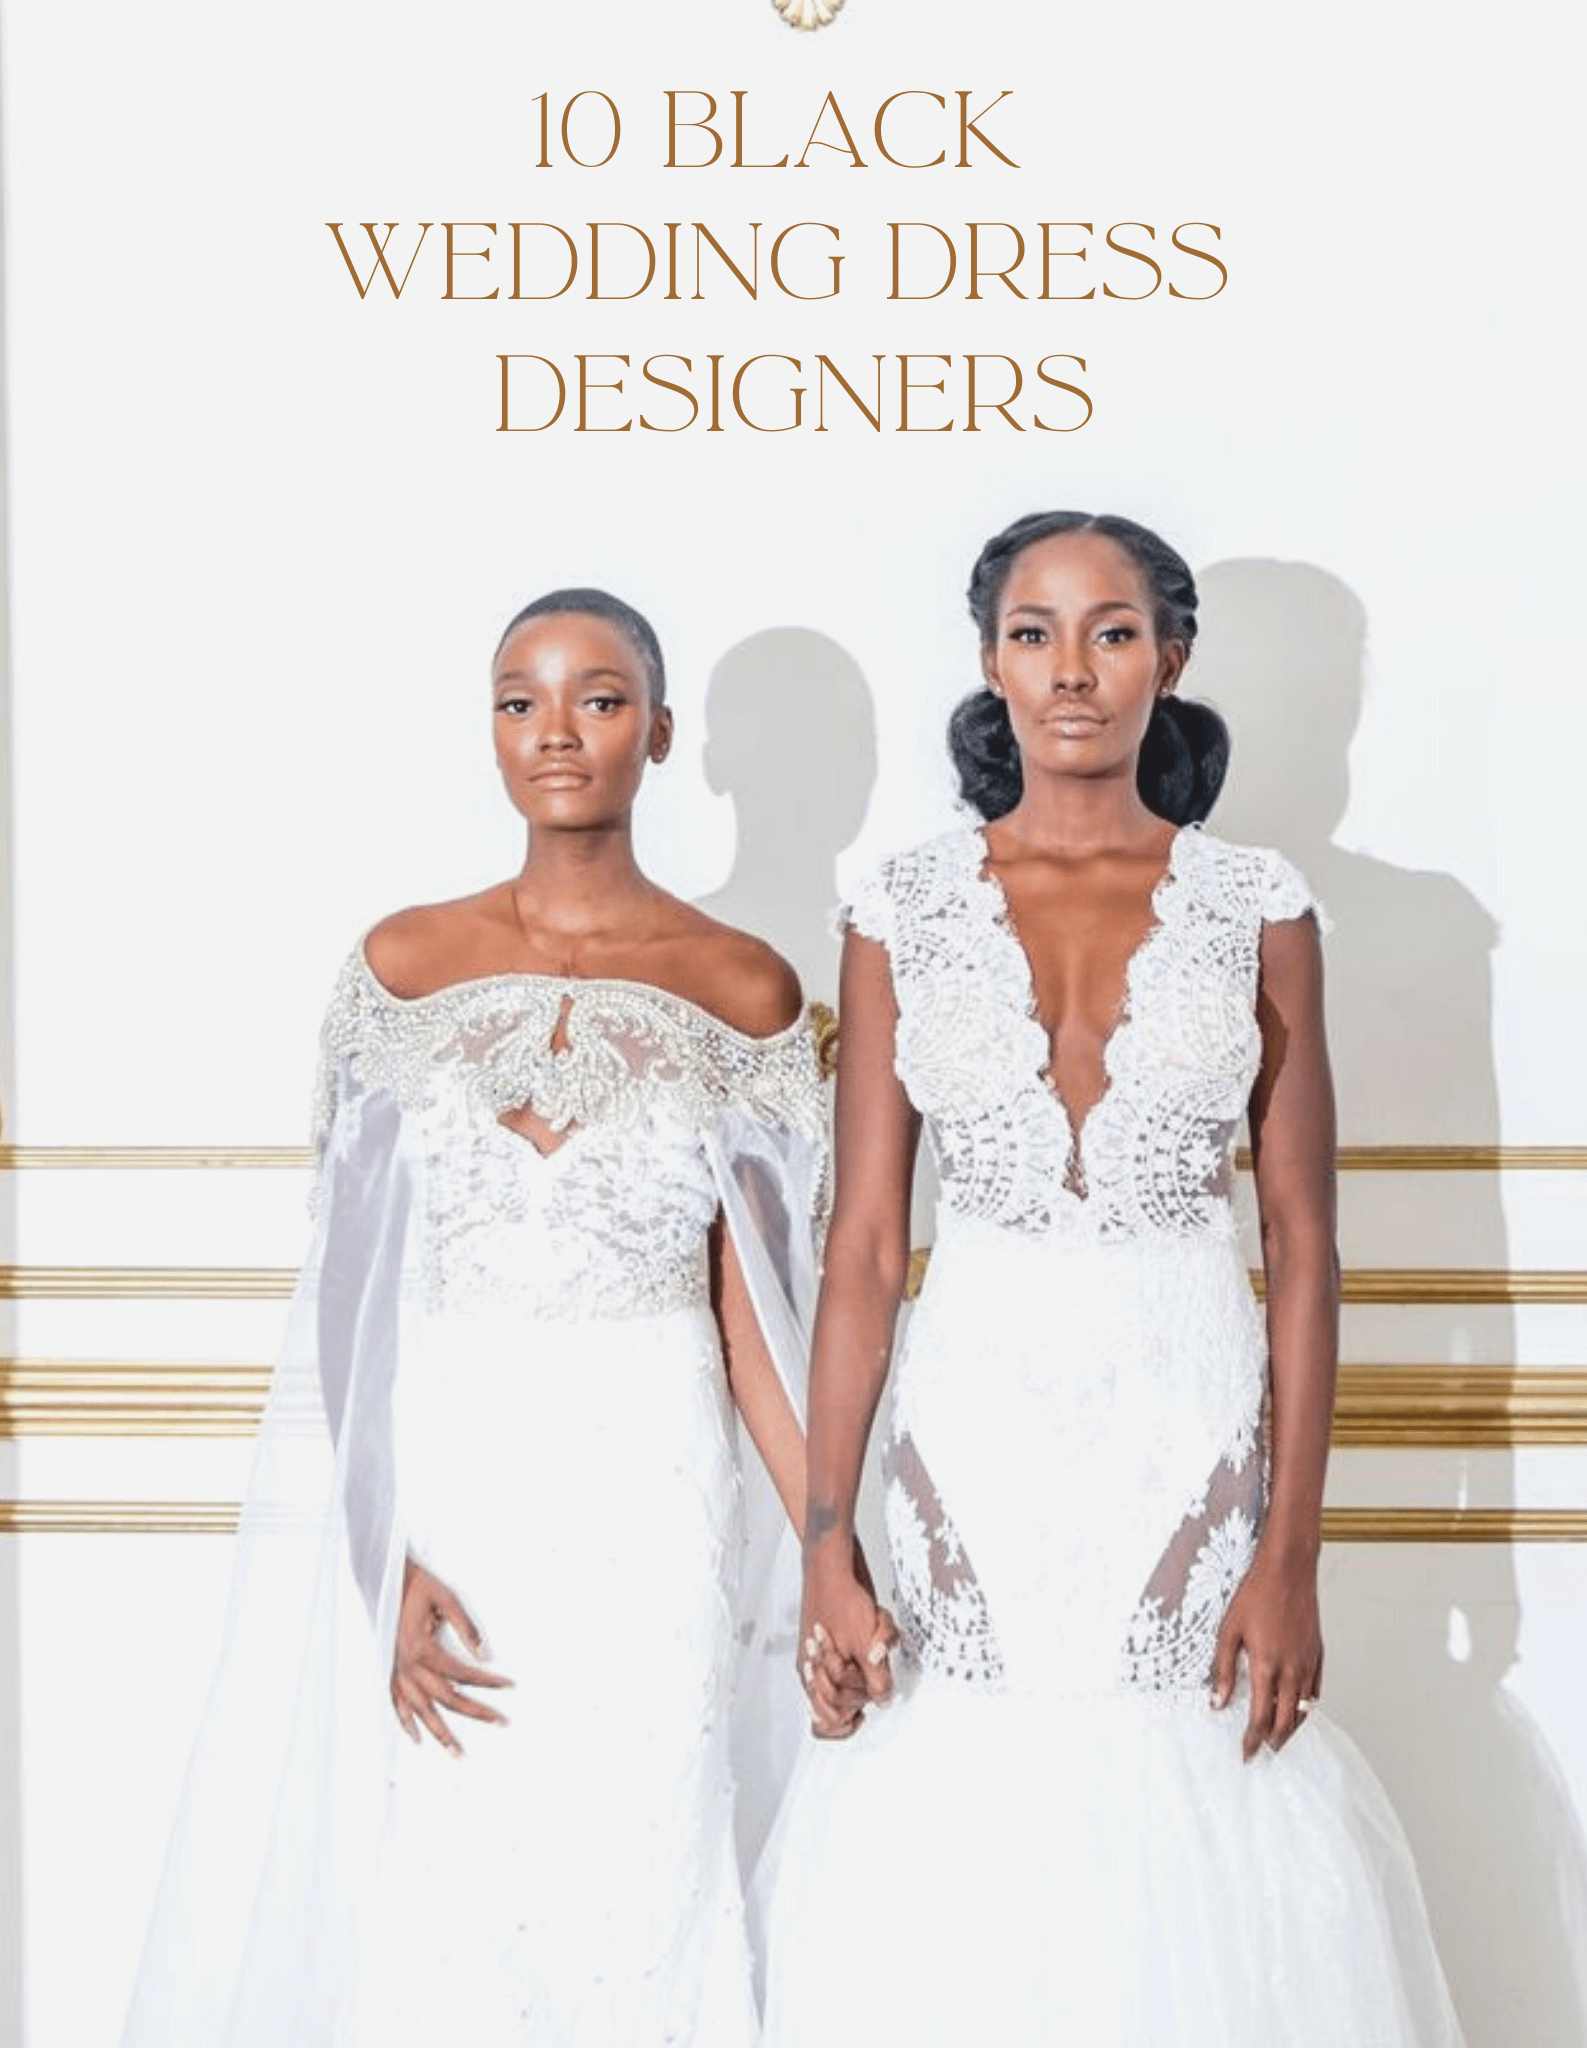 2 black models in wedding dresses